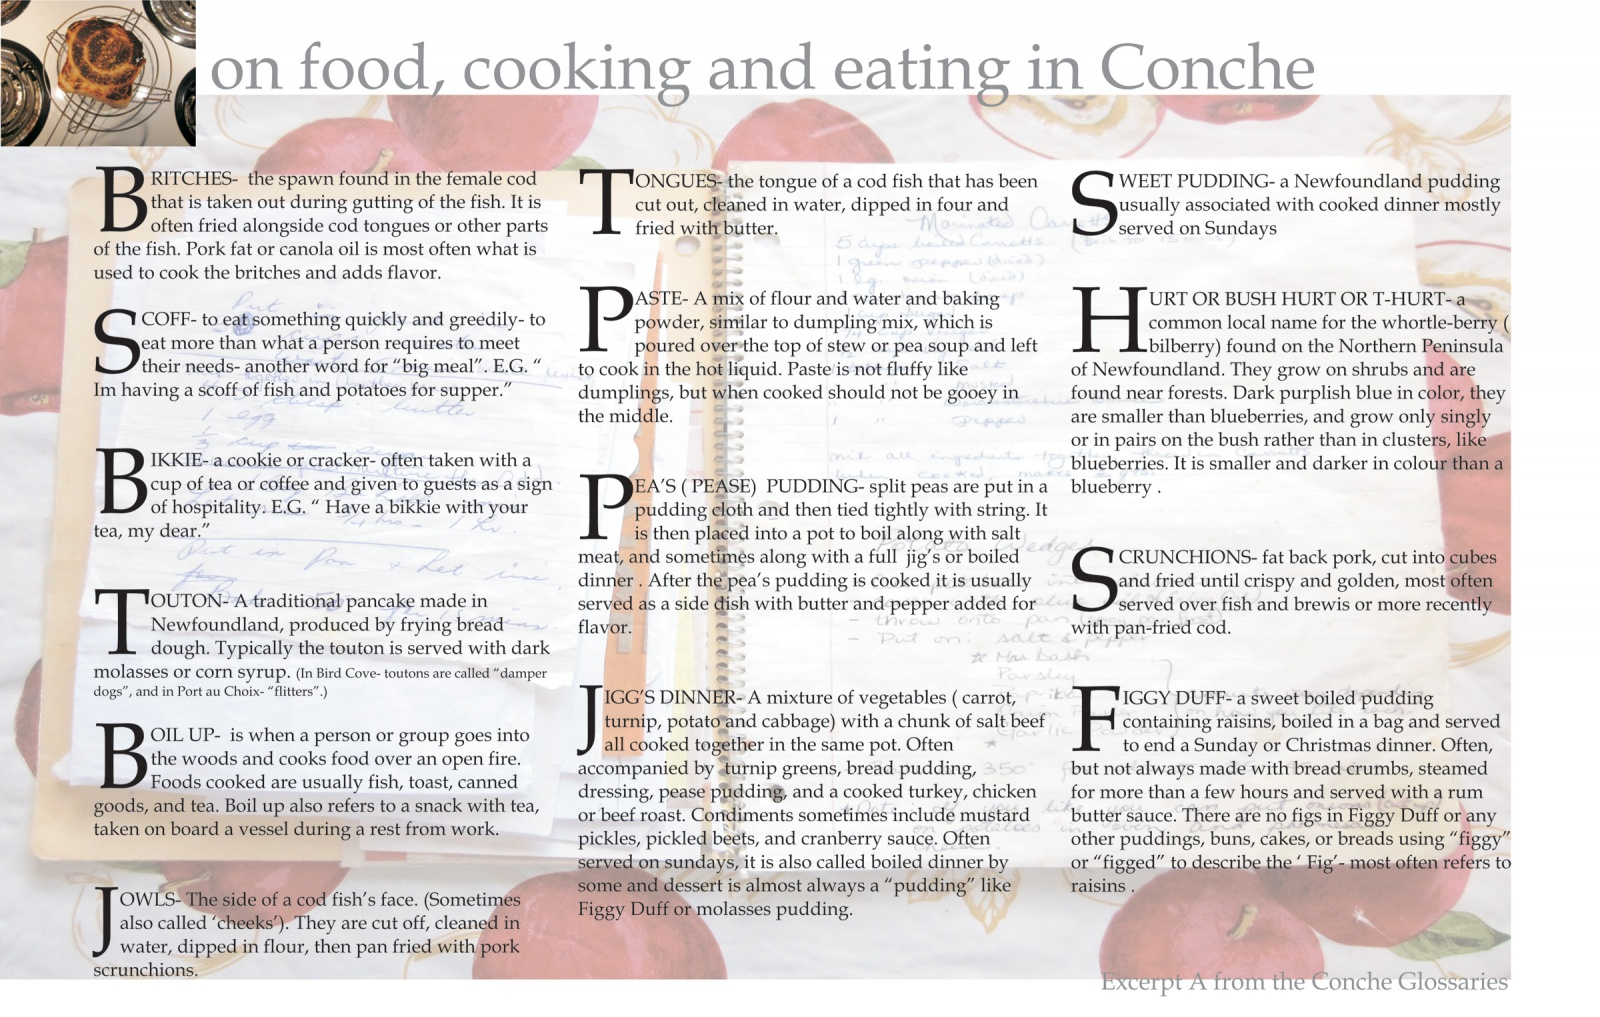 On food, cooking and eating in Conche